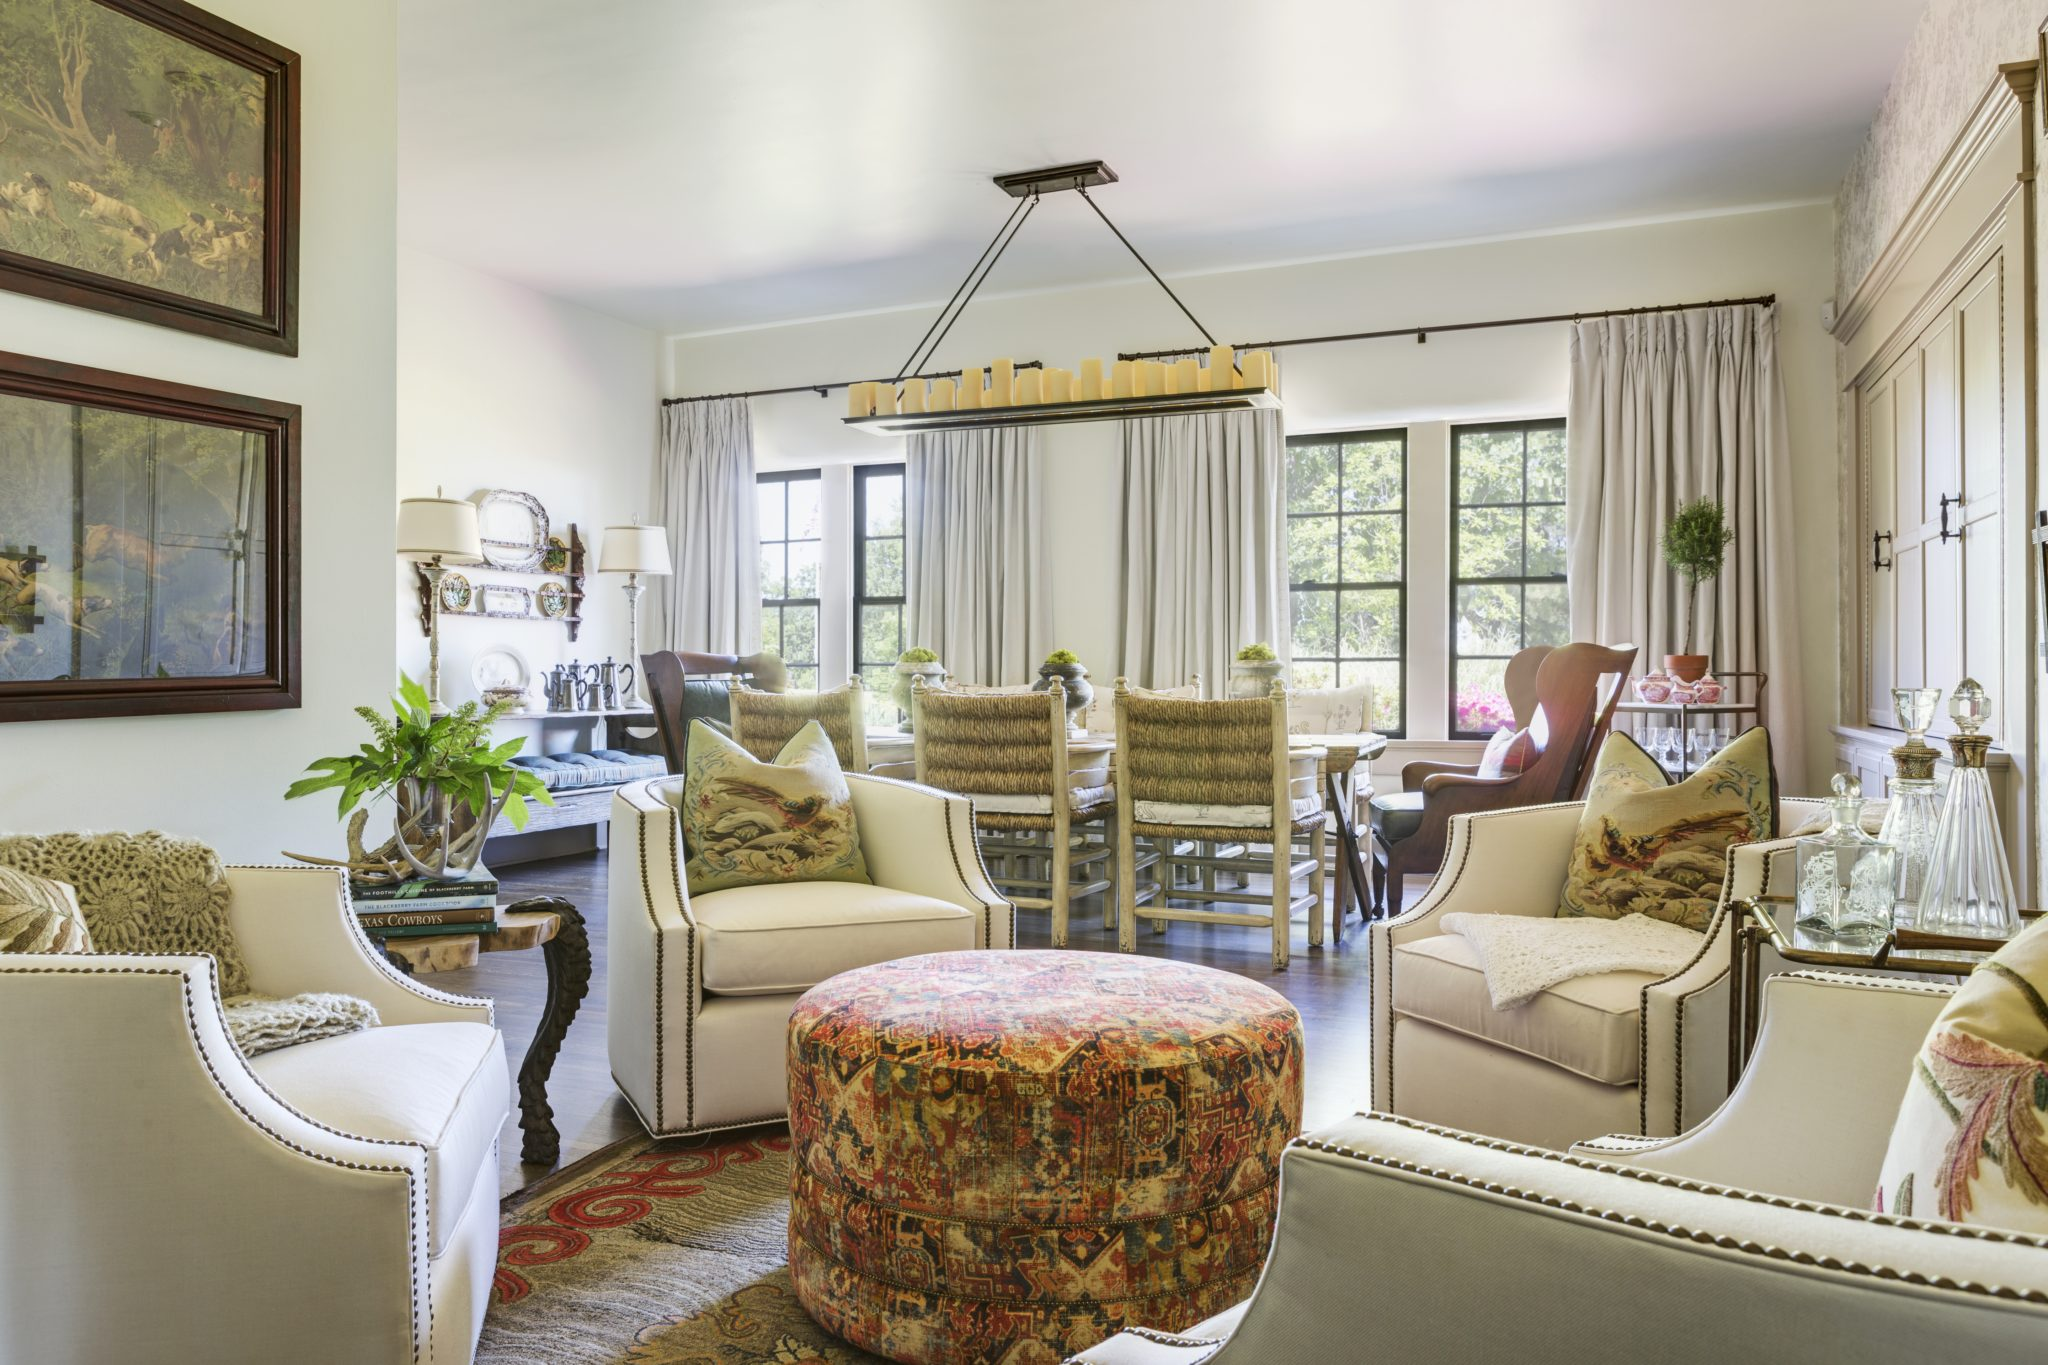 Sitting area with custom chairs, hunting prints and antique decanter collection by Goddard Design Group